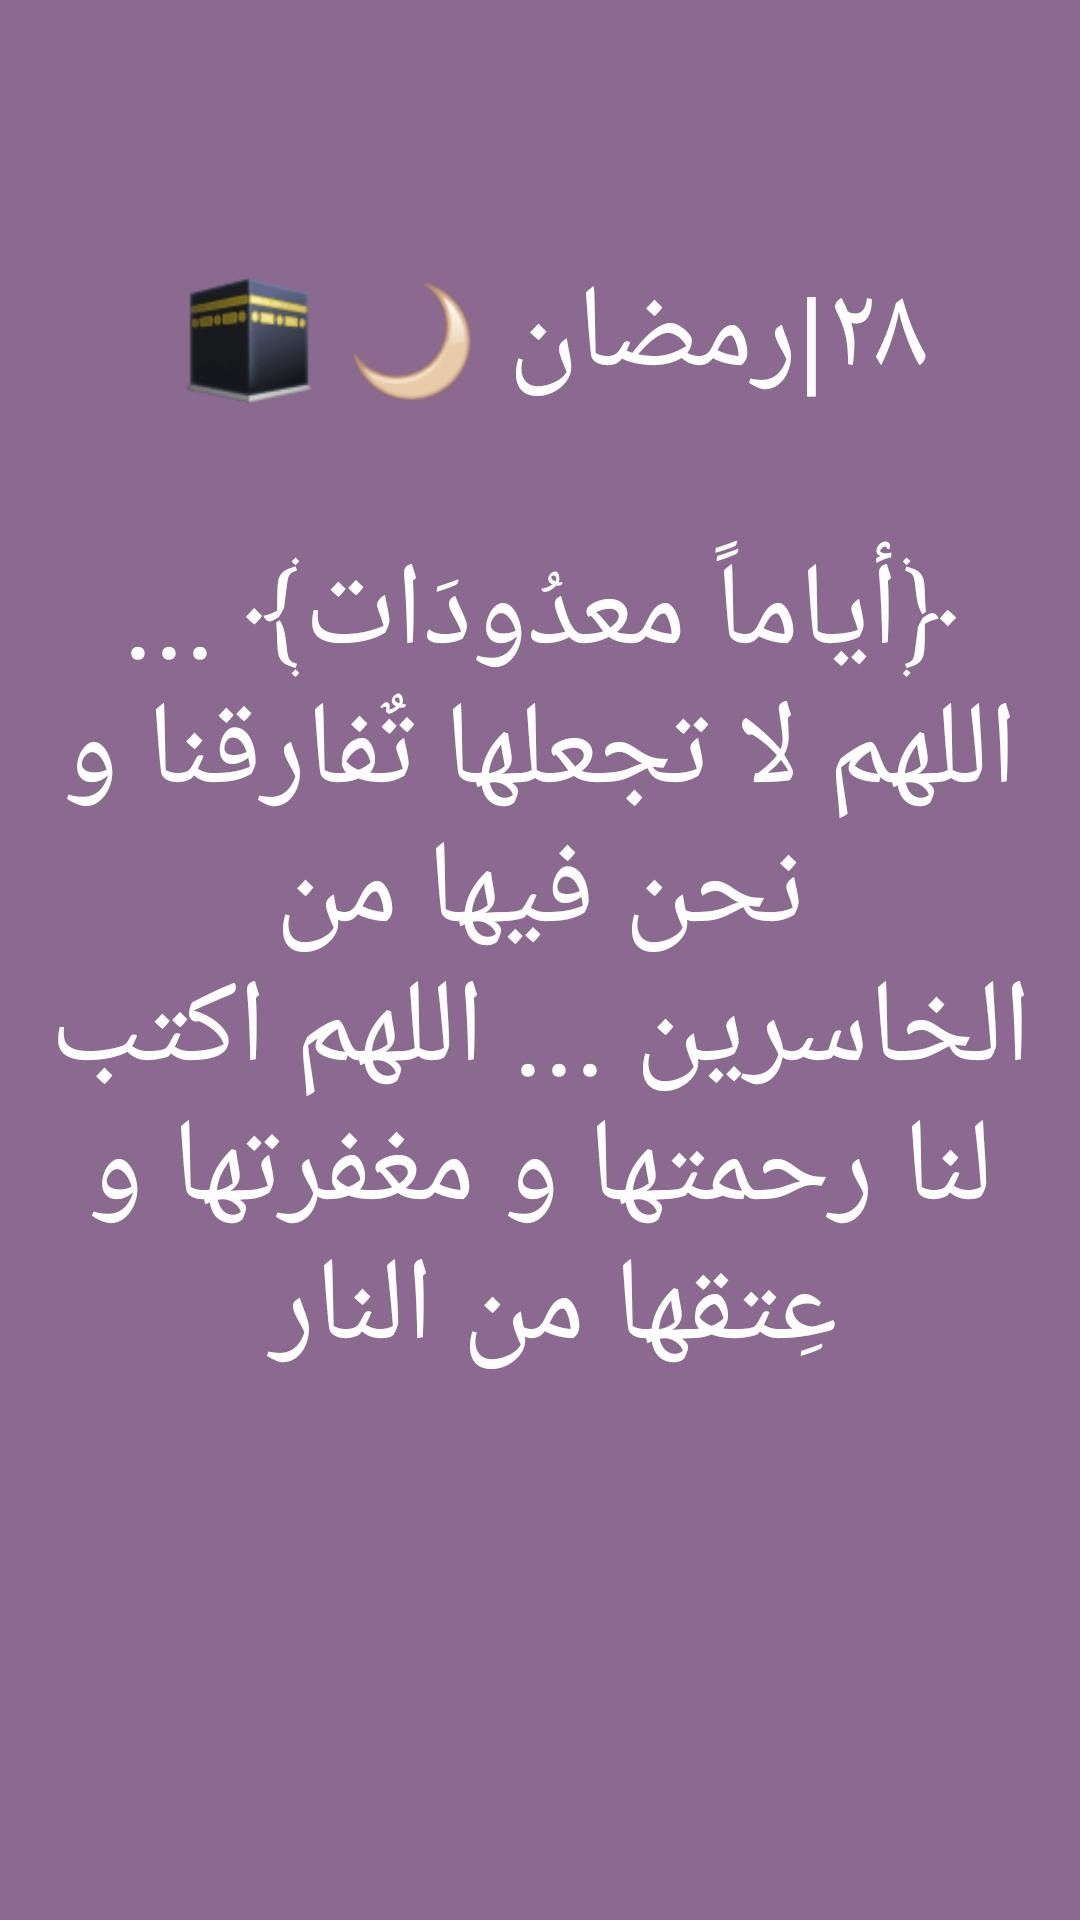 Pin By Lyan Hitham On Islamic Quotes Islamic Quotes Quotes Arabic Calligraphy